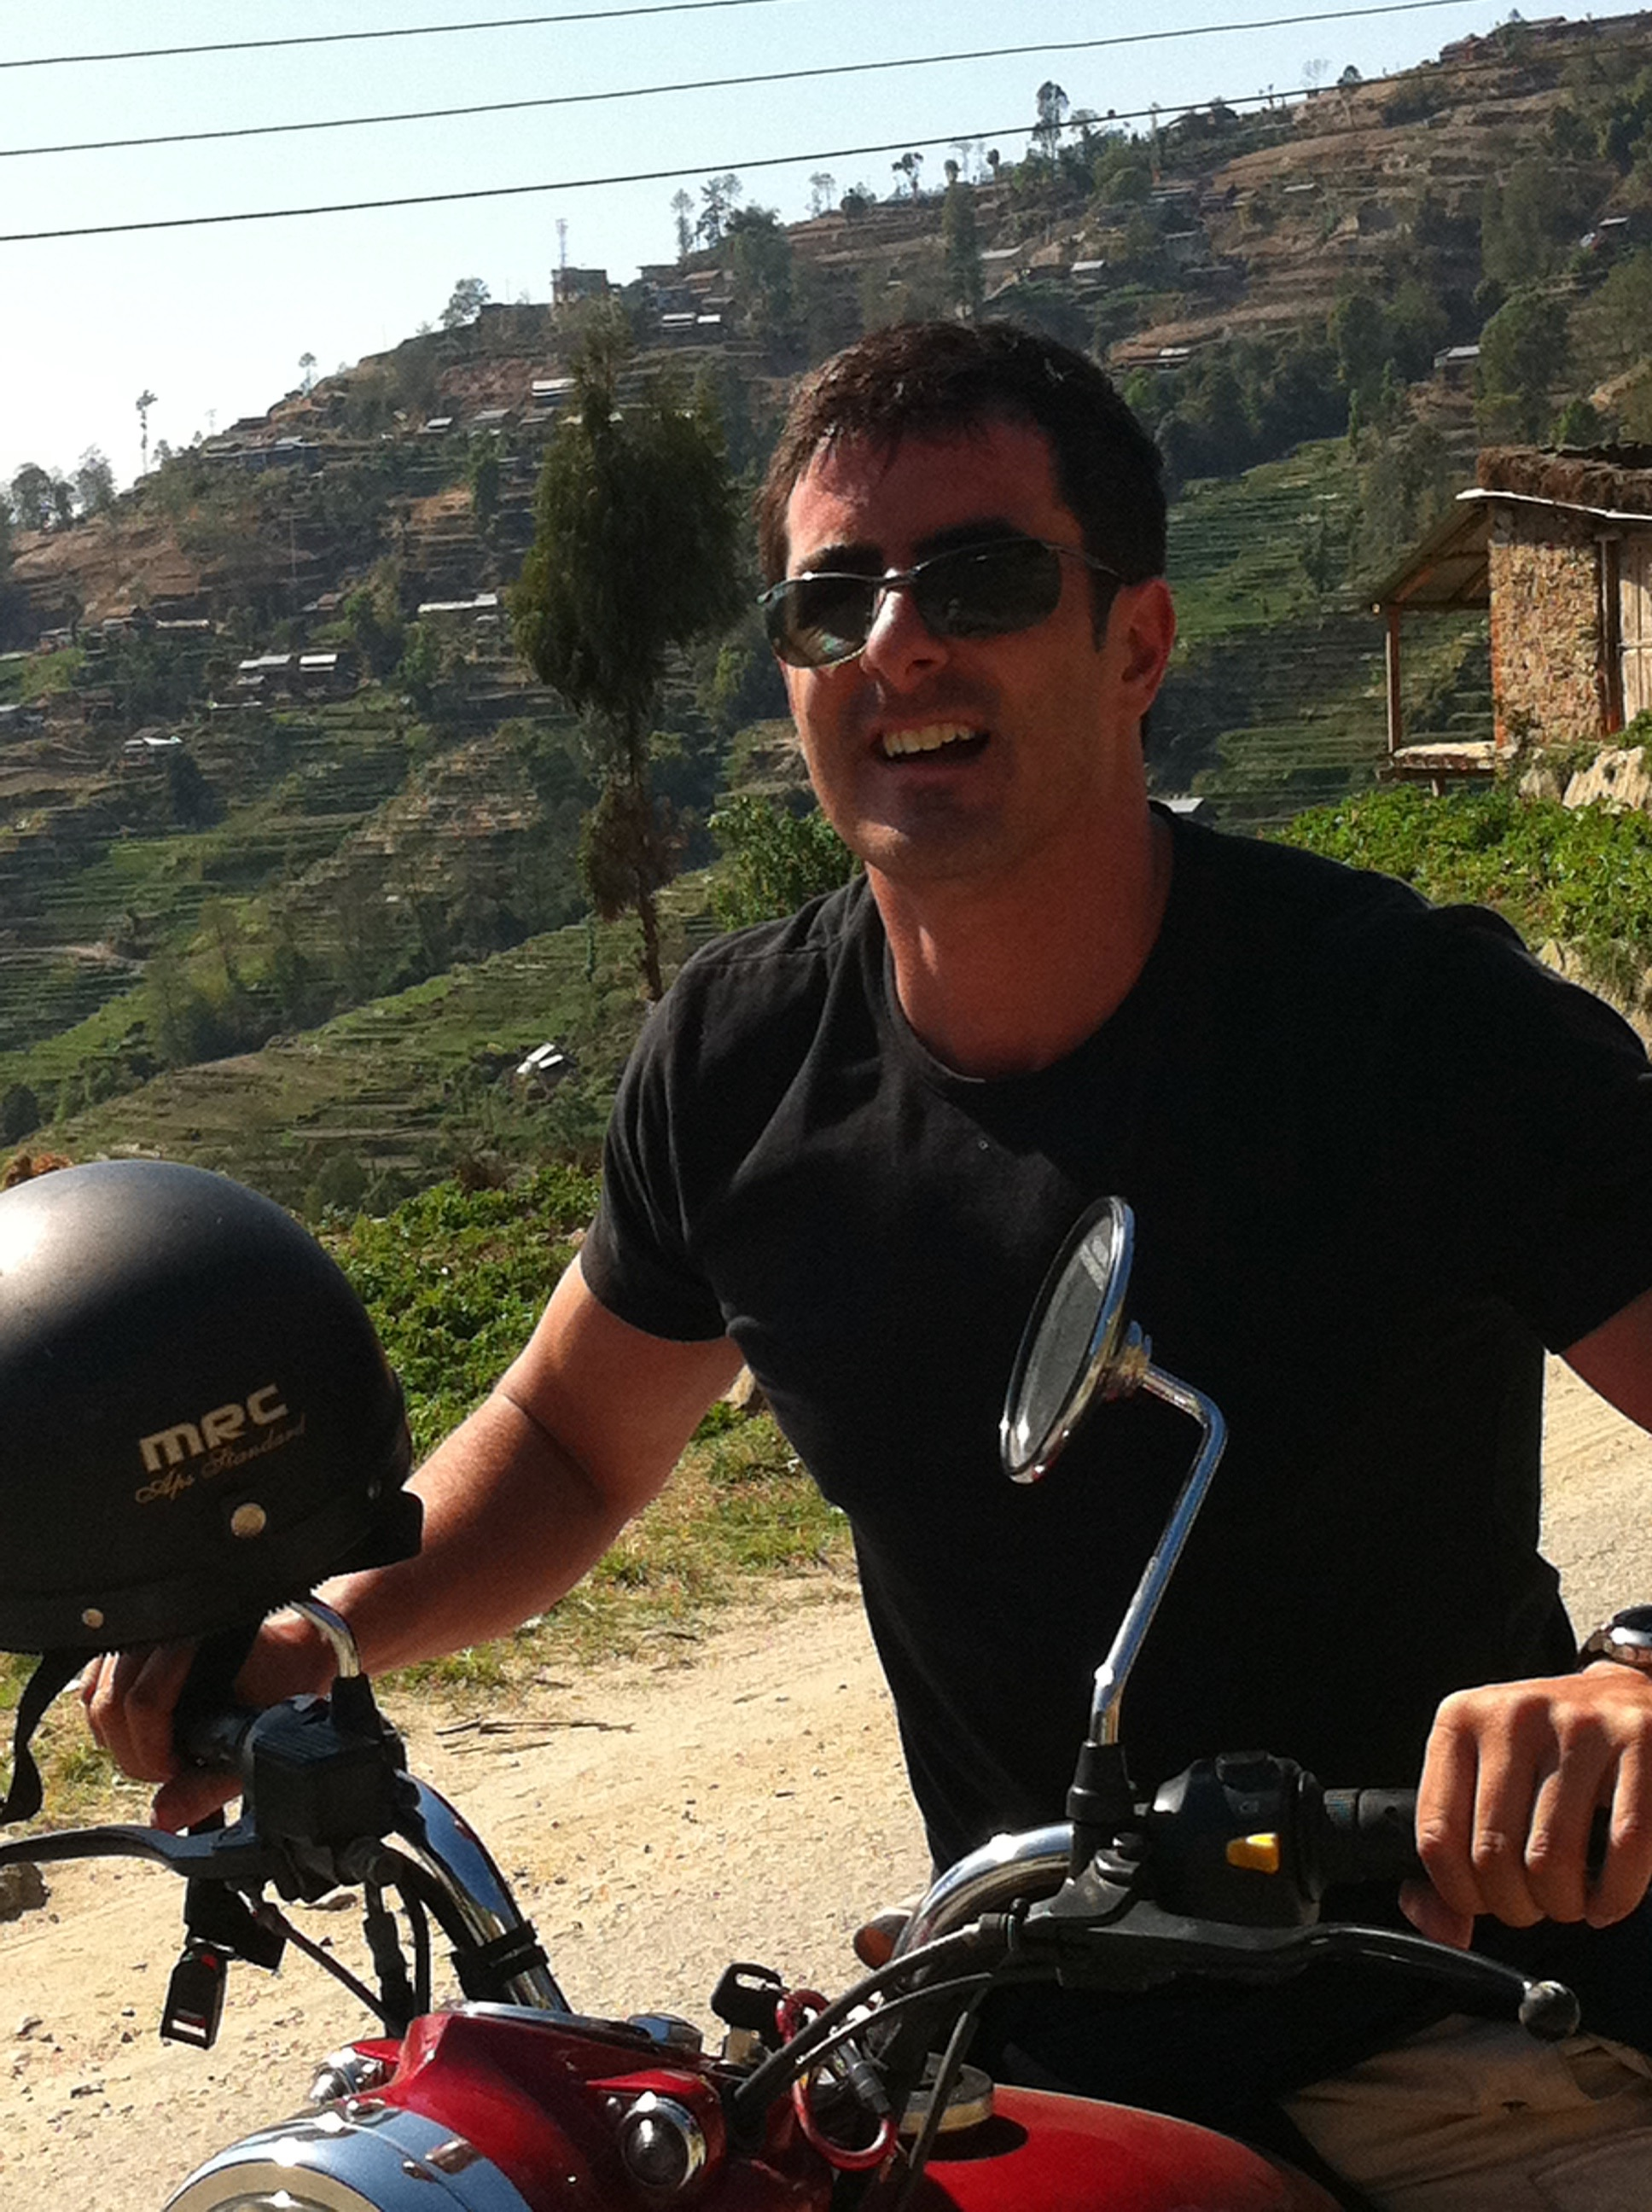 Andrew-Benfield-Adventure-Rider-Radio-Motorcycle-Podcast-2.jpg